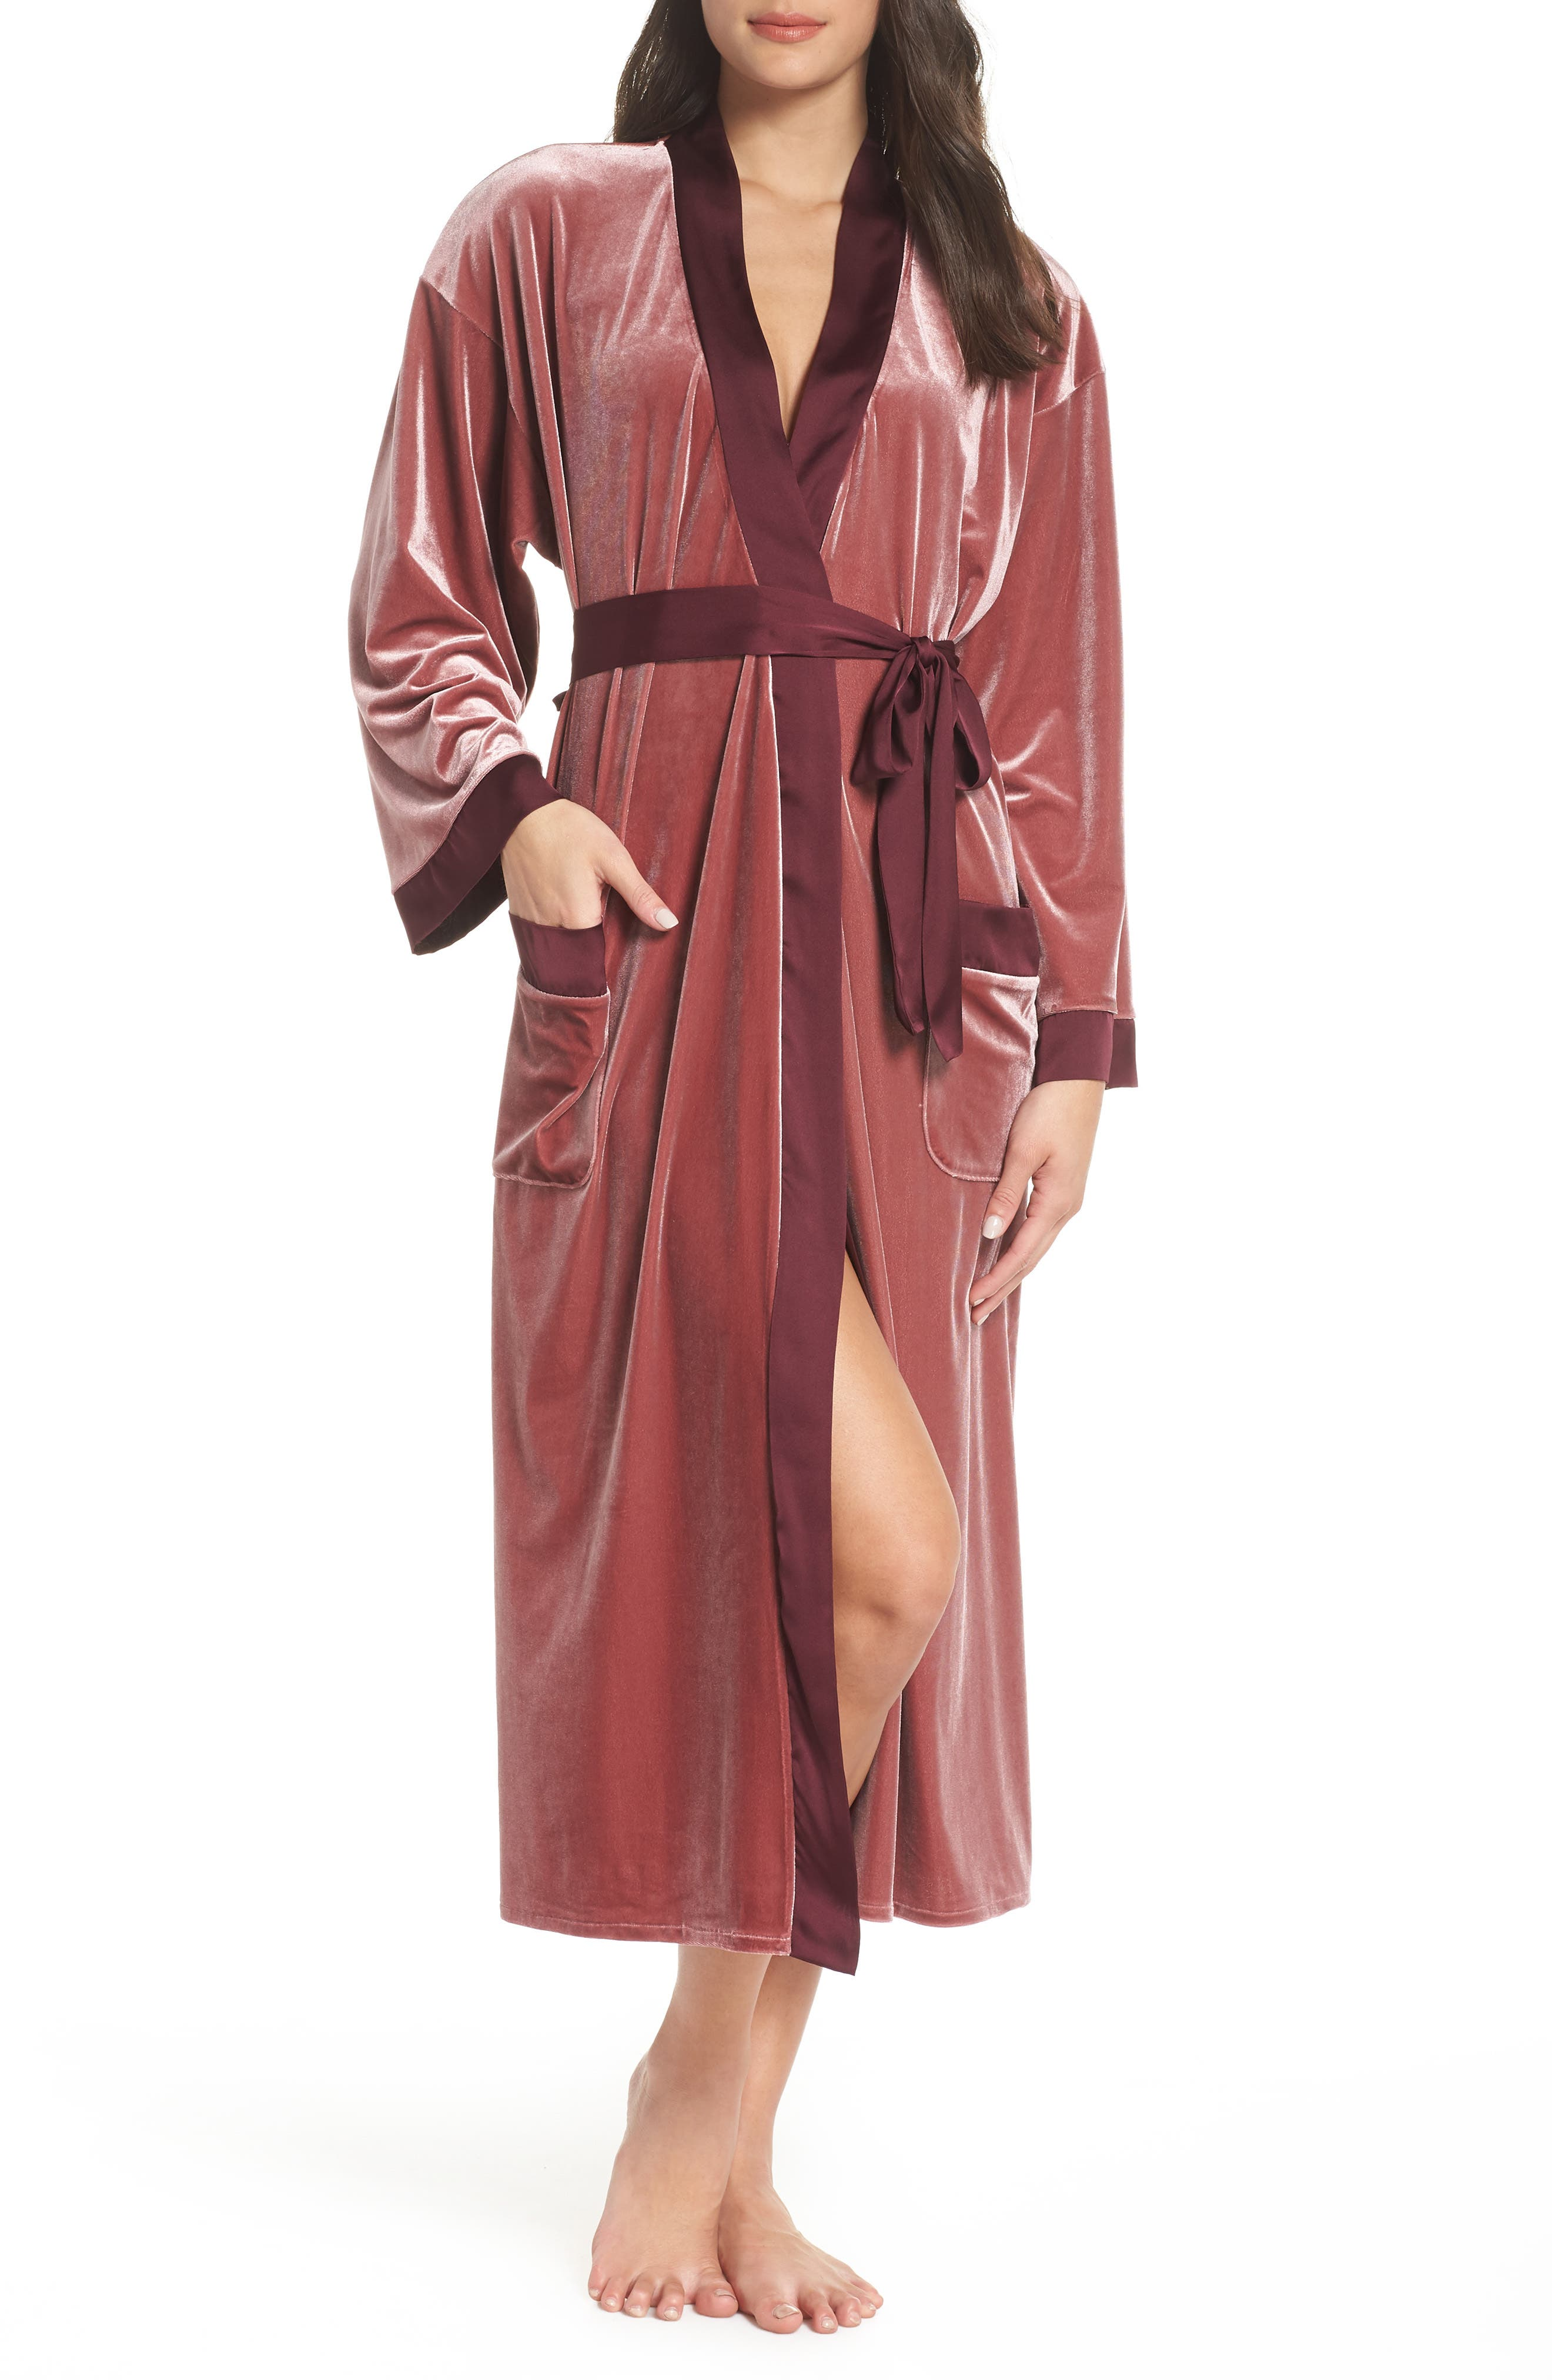 Vintage Nightgowns, Pajamas, Baby Dolls, Robes Womens Chelsea28 Colorblock Long Velvet Robe $53.40 AT vintagedancer.com